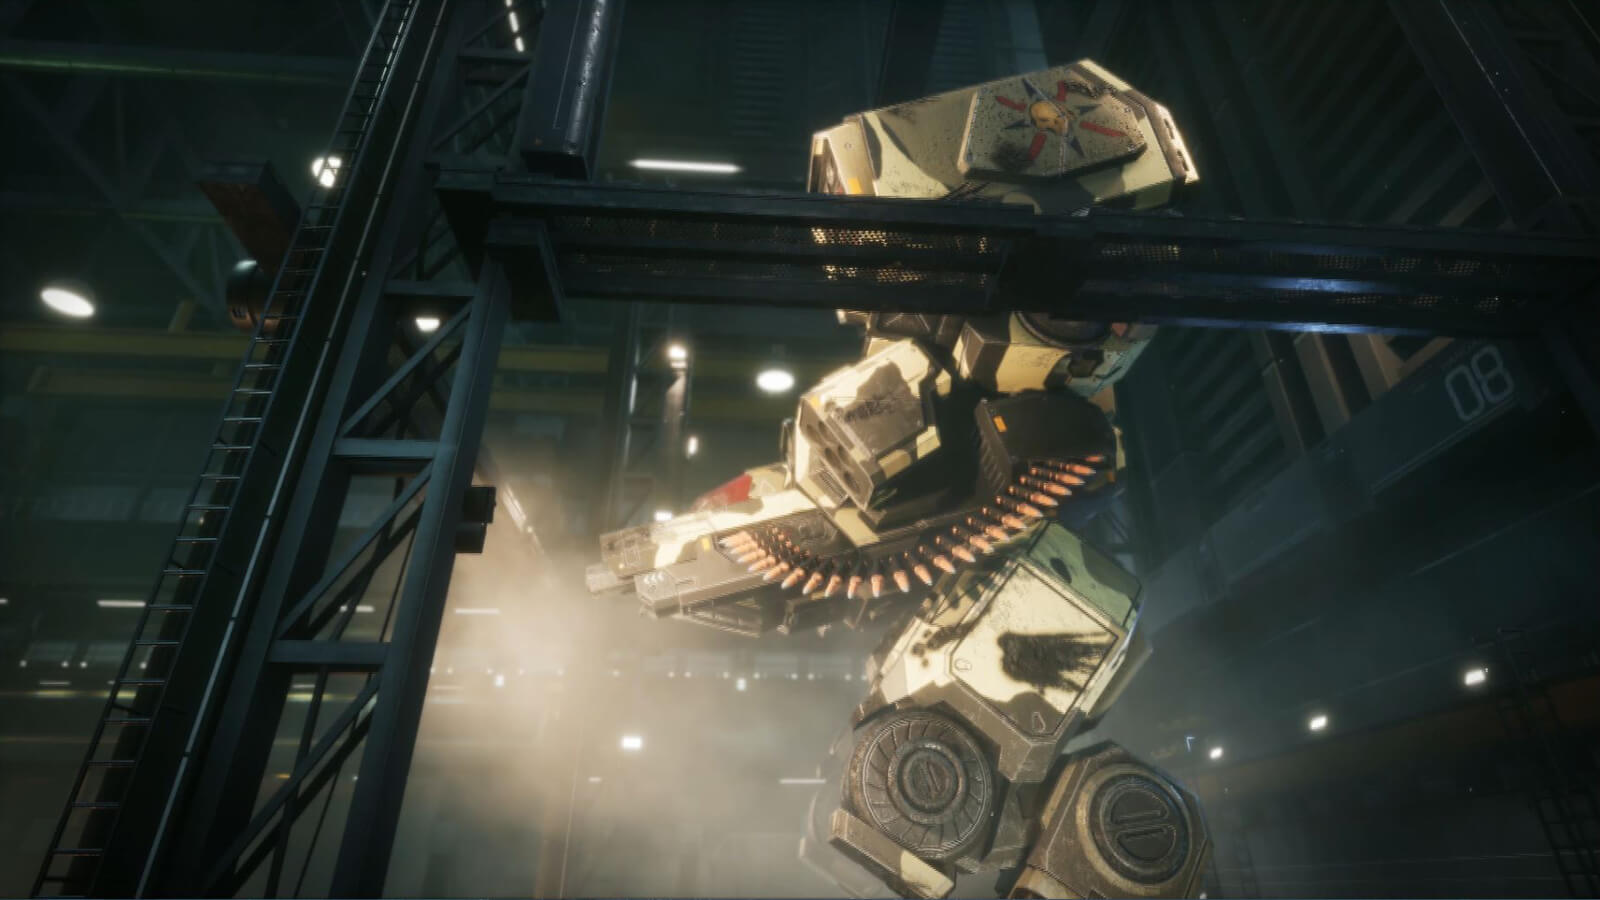 Seen from the side, a gigantic armored battle mech stands in a hangar.